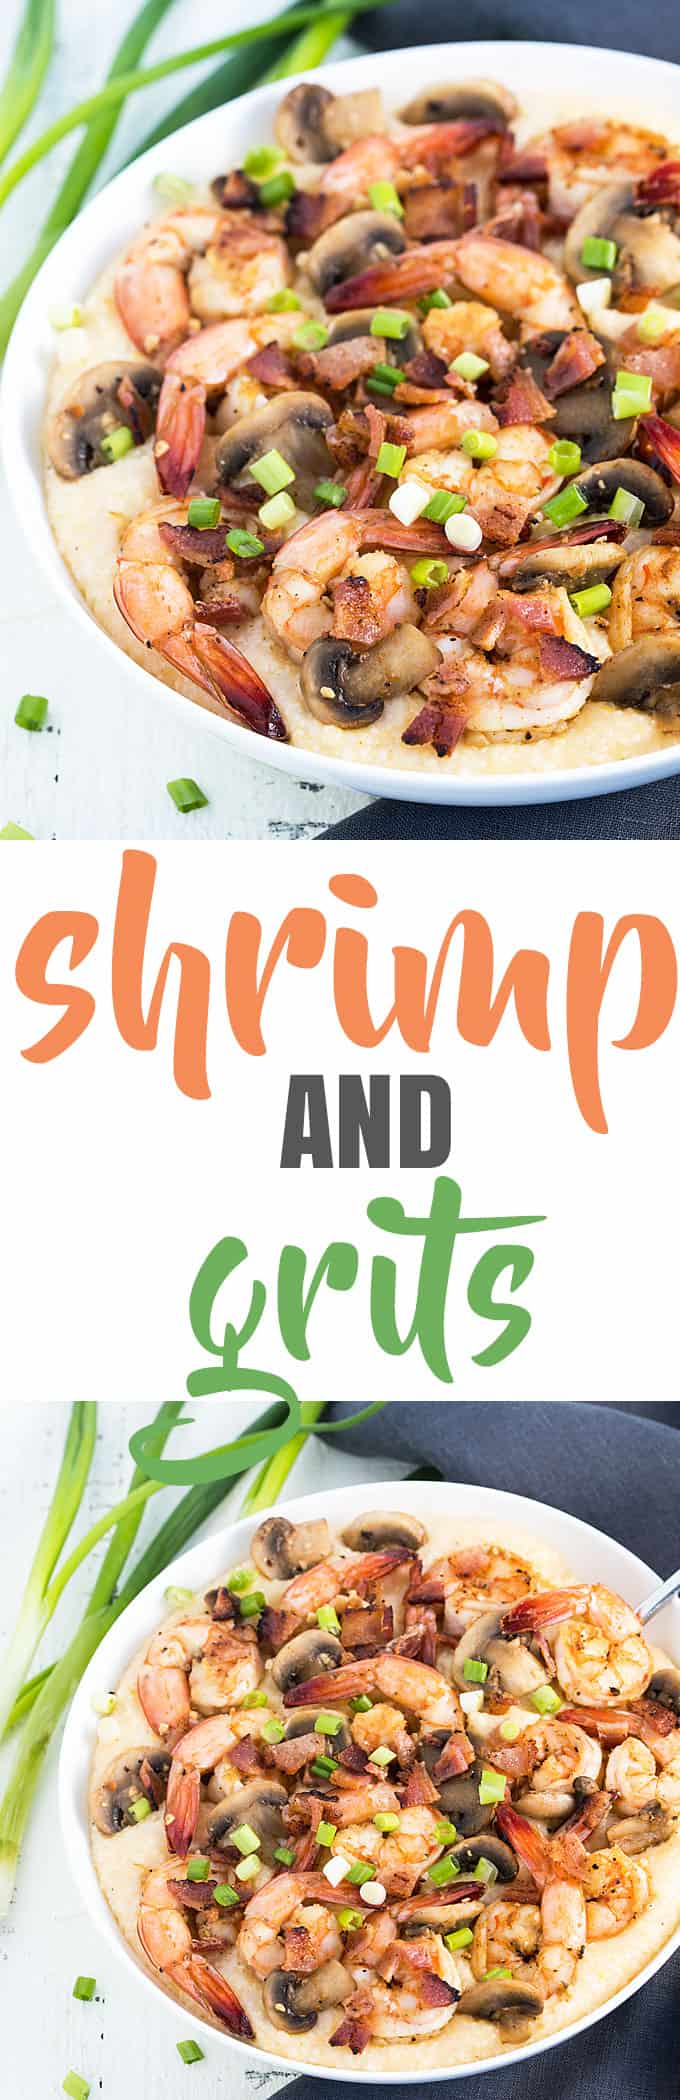 Shrimp and Grits - the ultimate seafood comfort food!